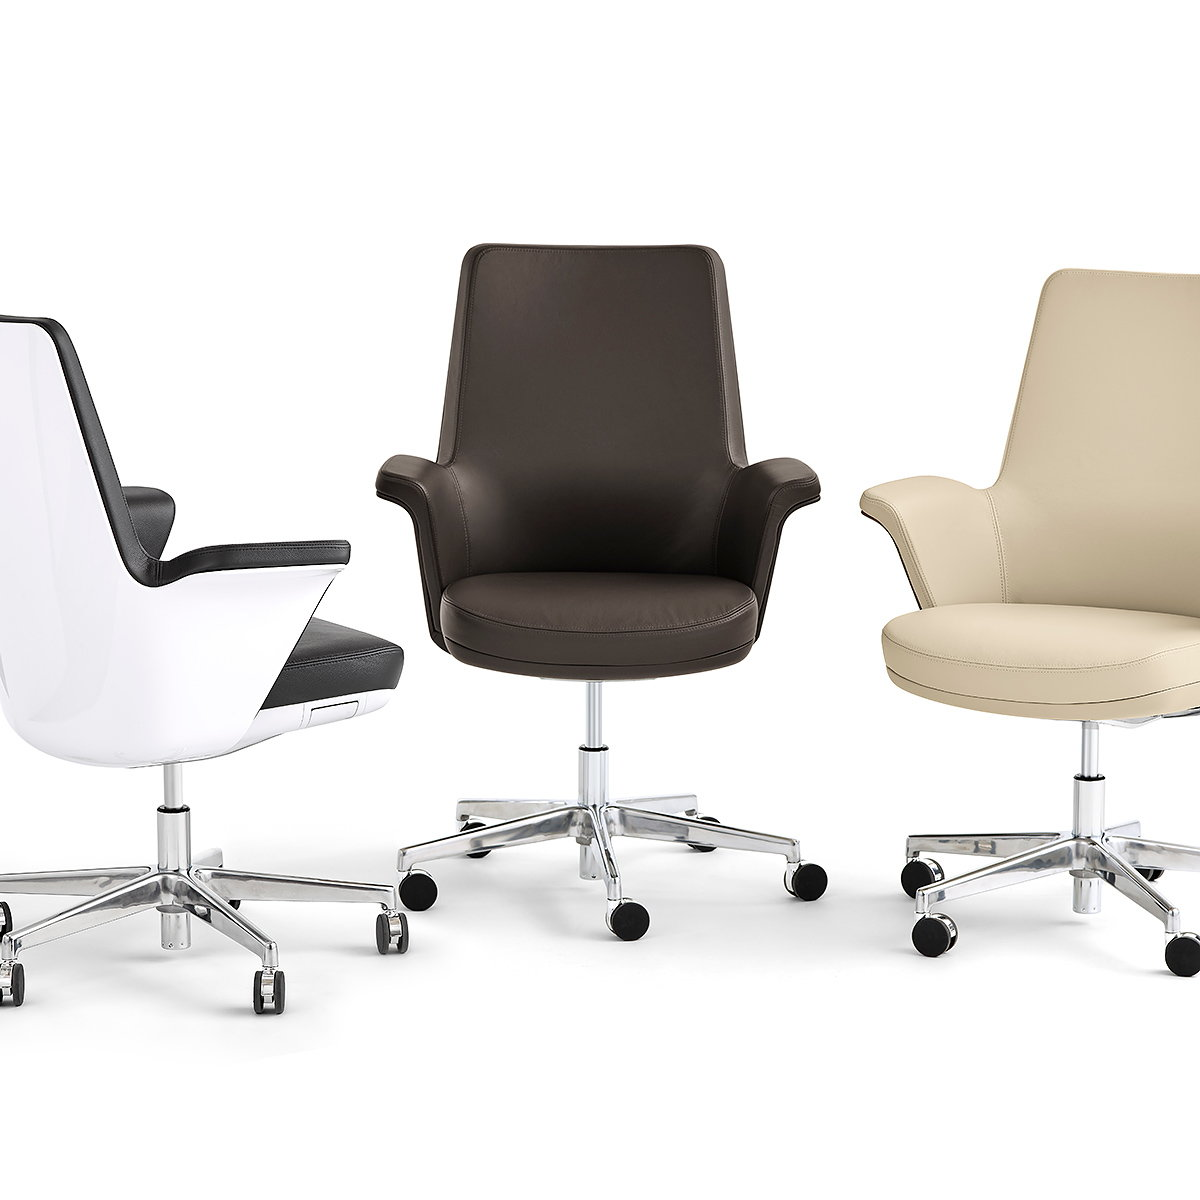 Humanscale to Debut 'Summa' Conference Chair at NeoCon